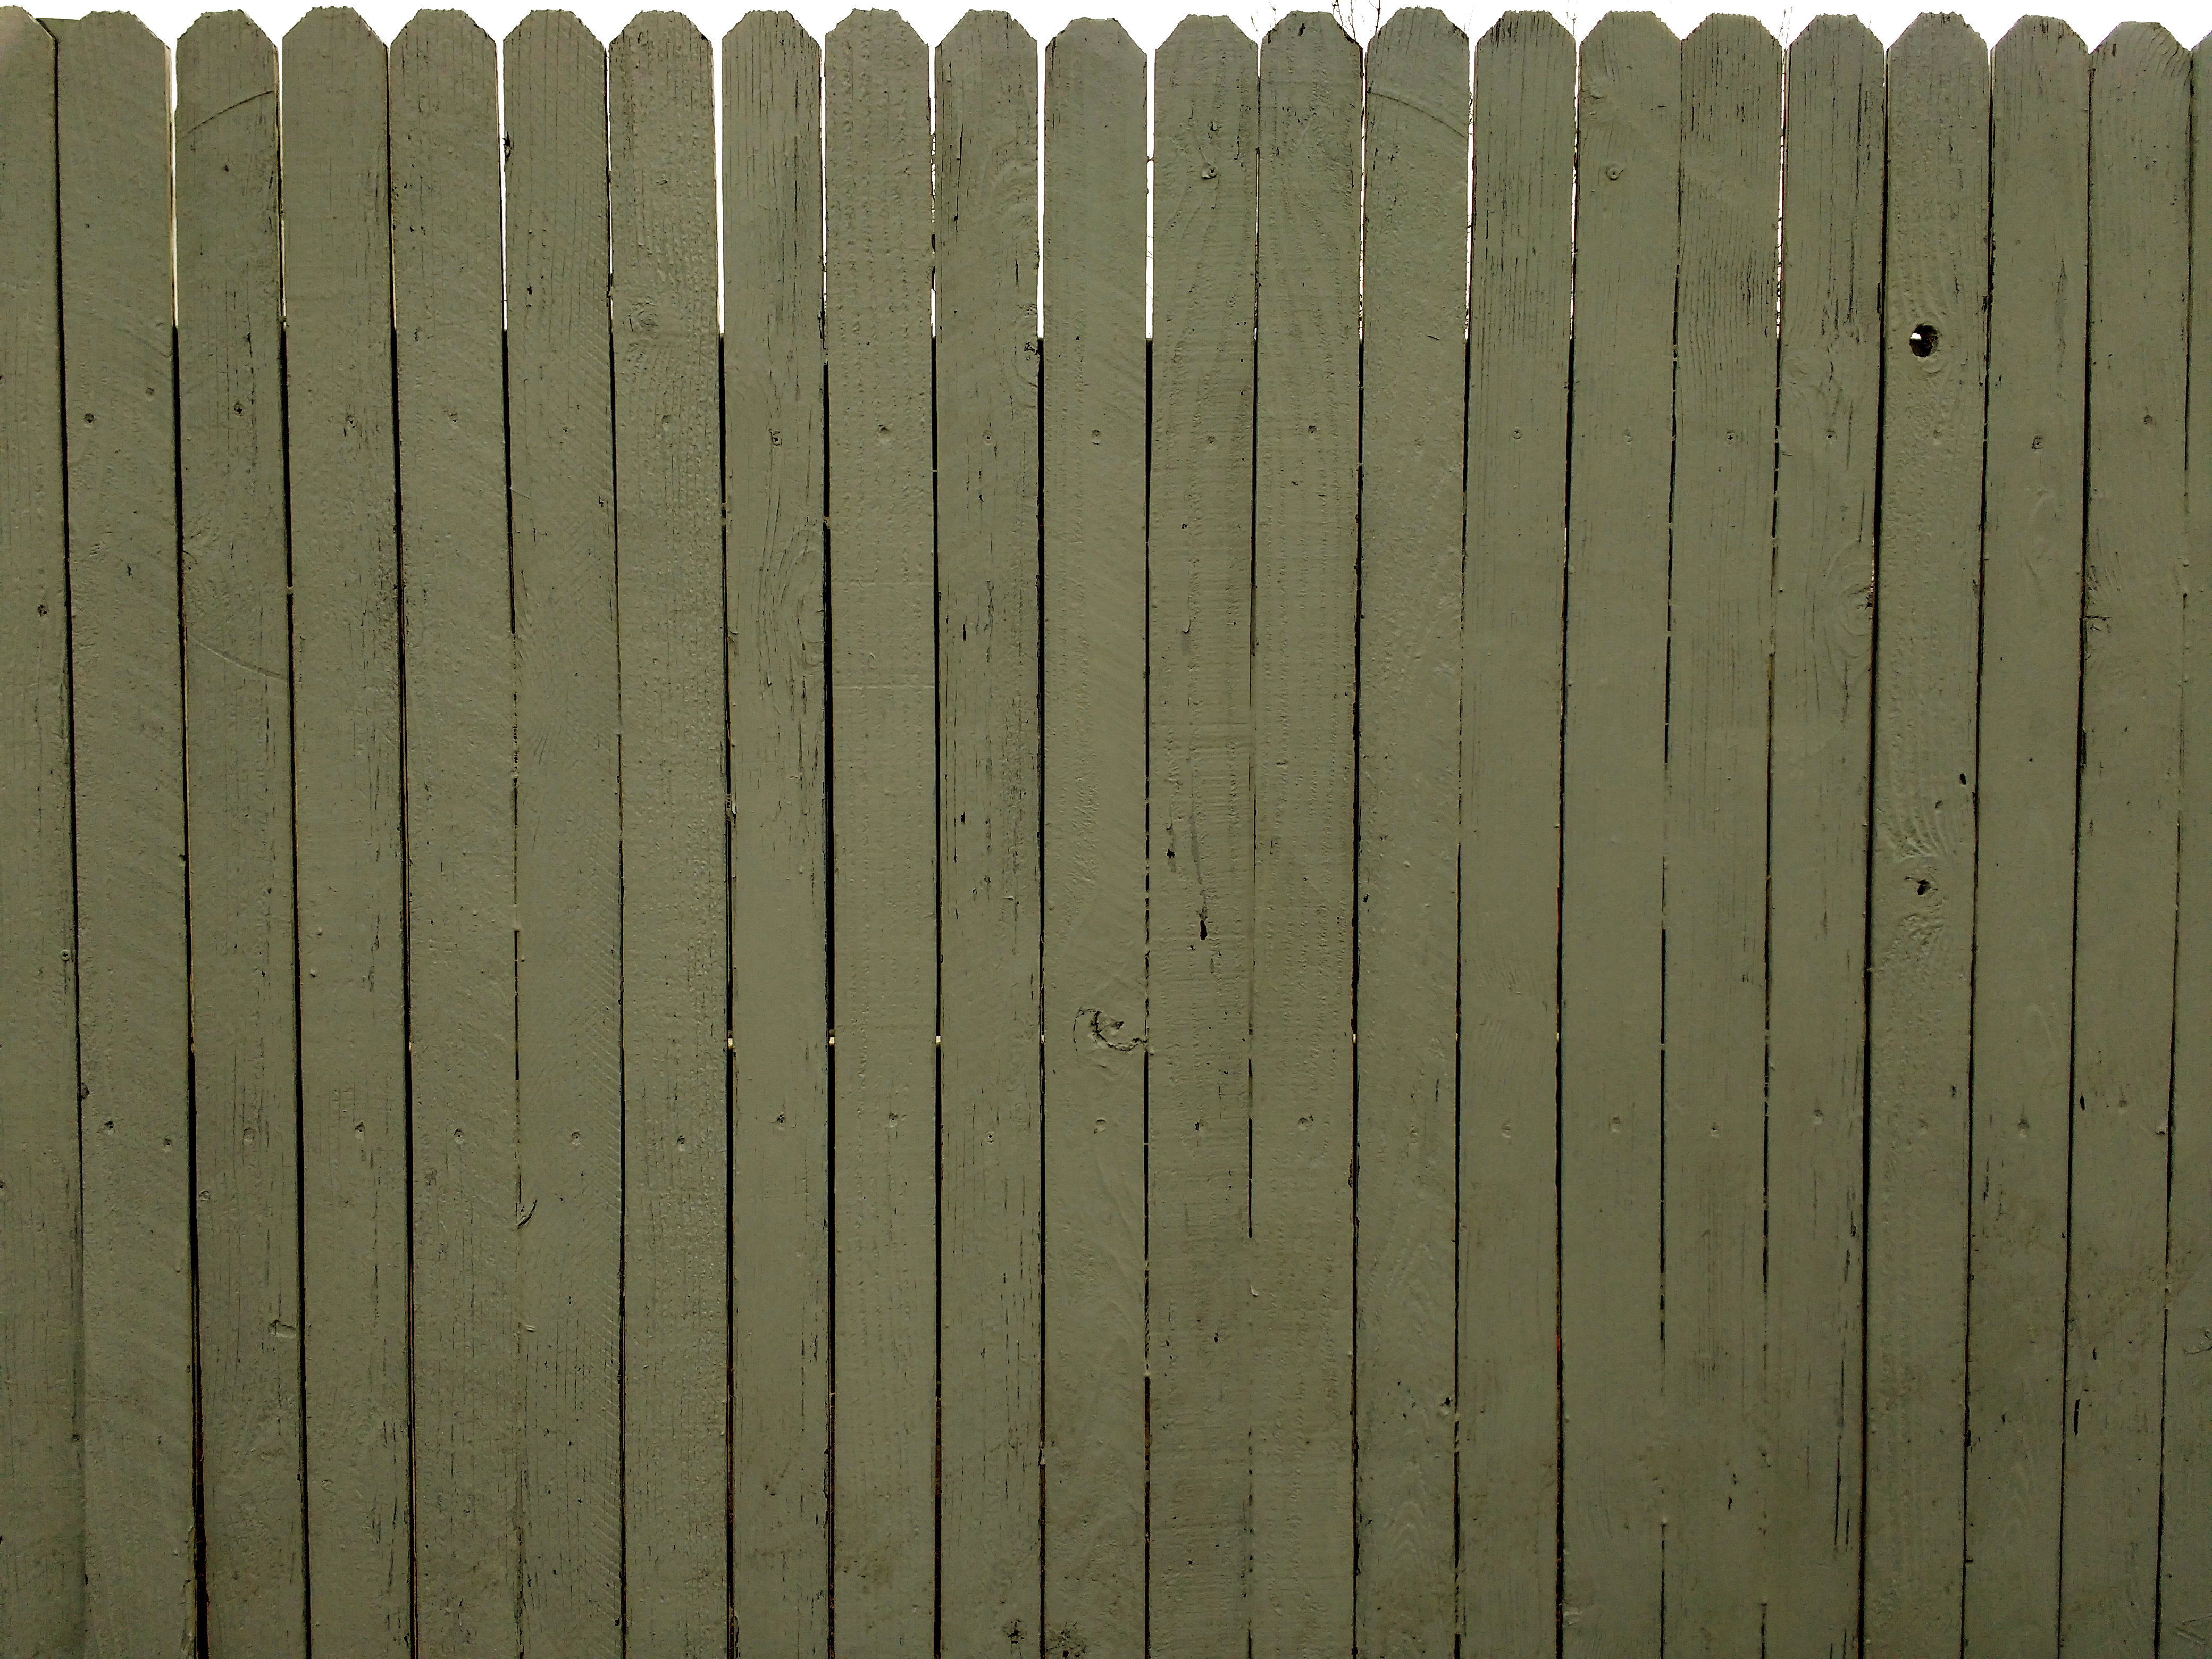 Khaki painted fence texture picture free photograph for Khaki green walls